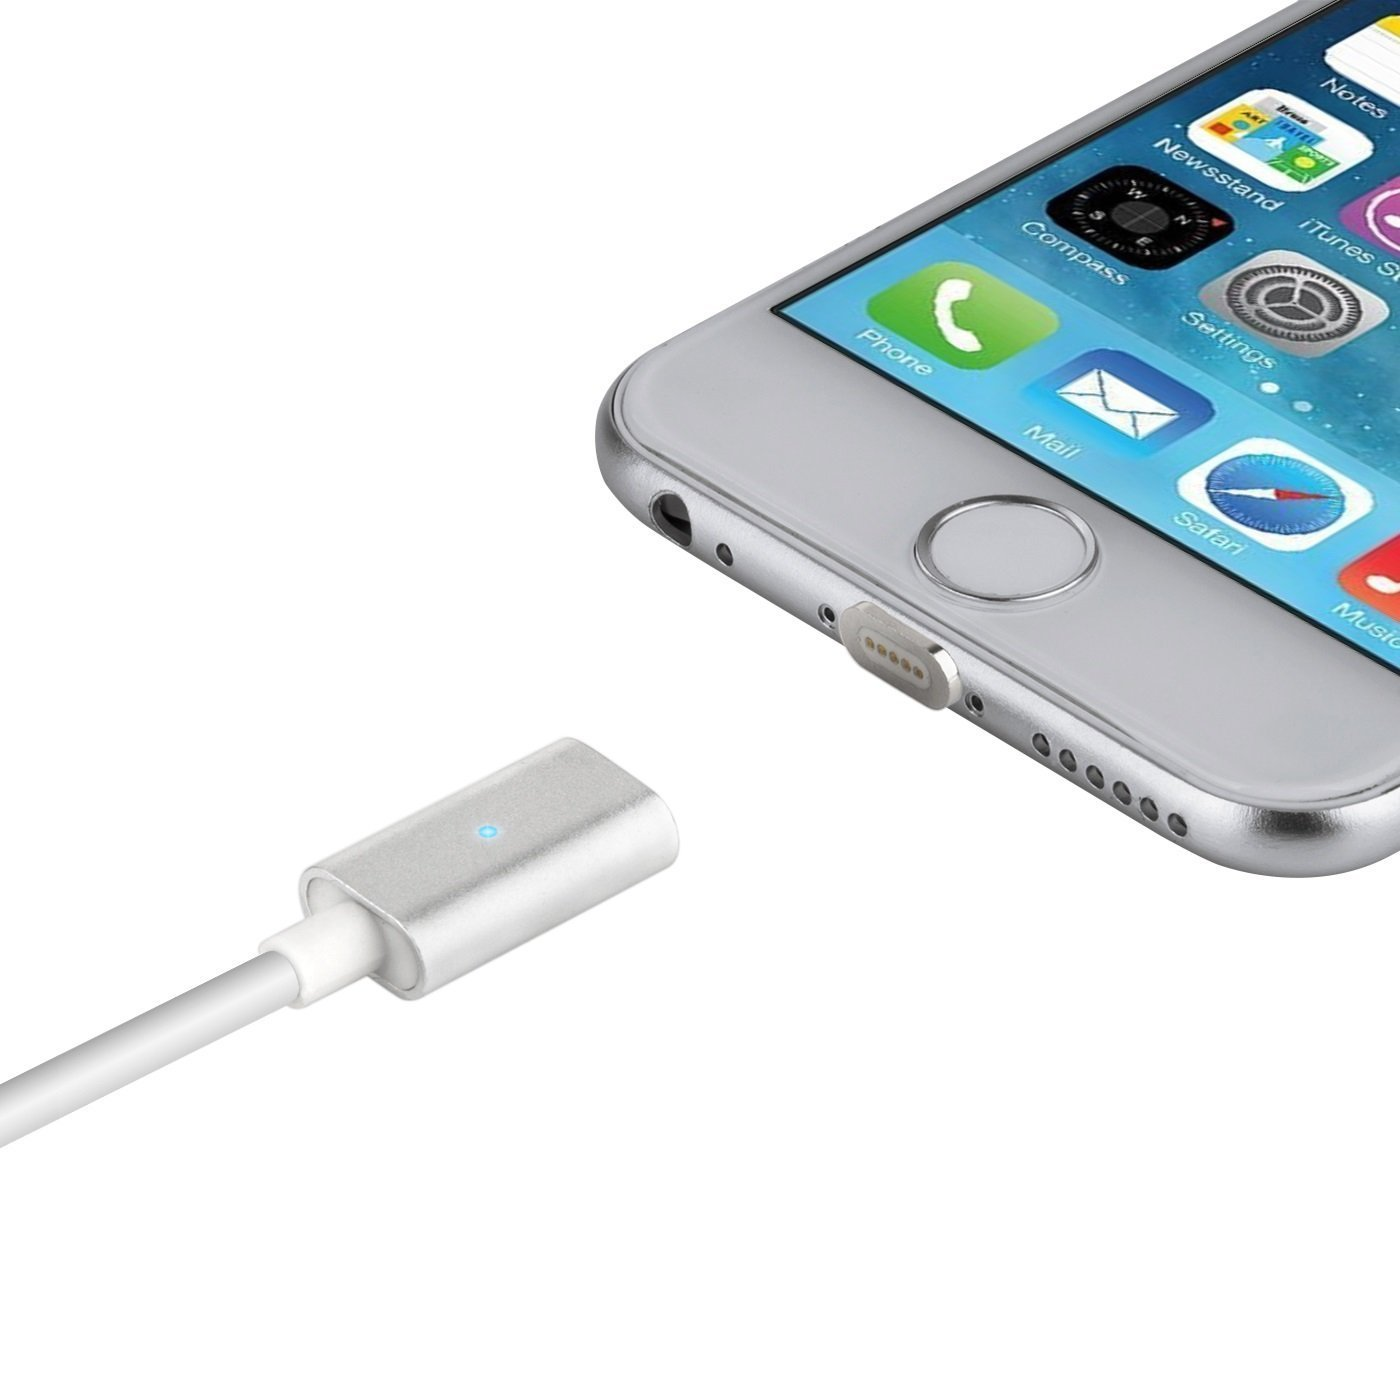 ... GAKTAI Magnetic Lightning kabel pengisian USB Adaptor Charger untukiphone 6S, iphone 6s Plus, iphone ...